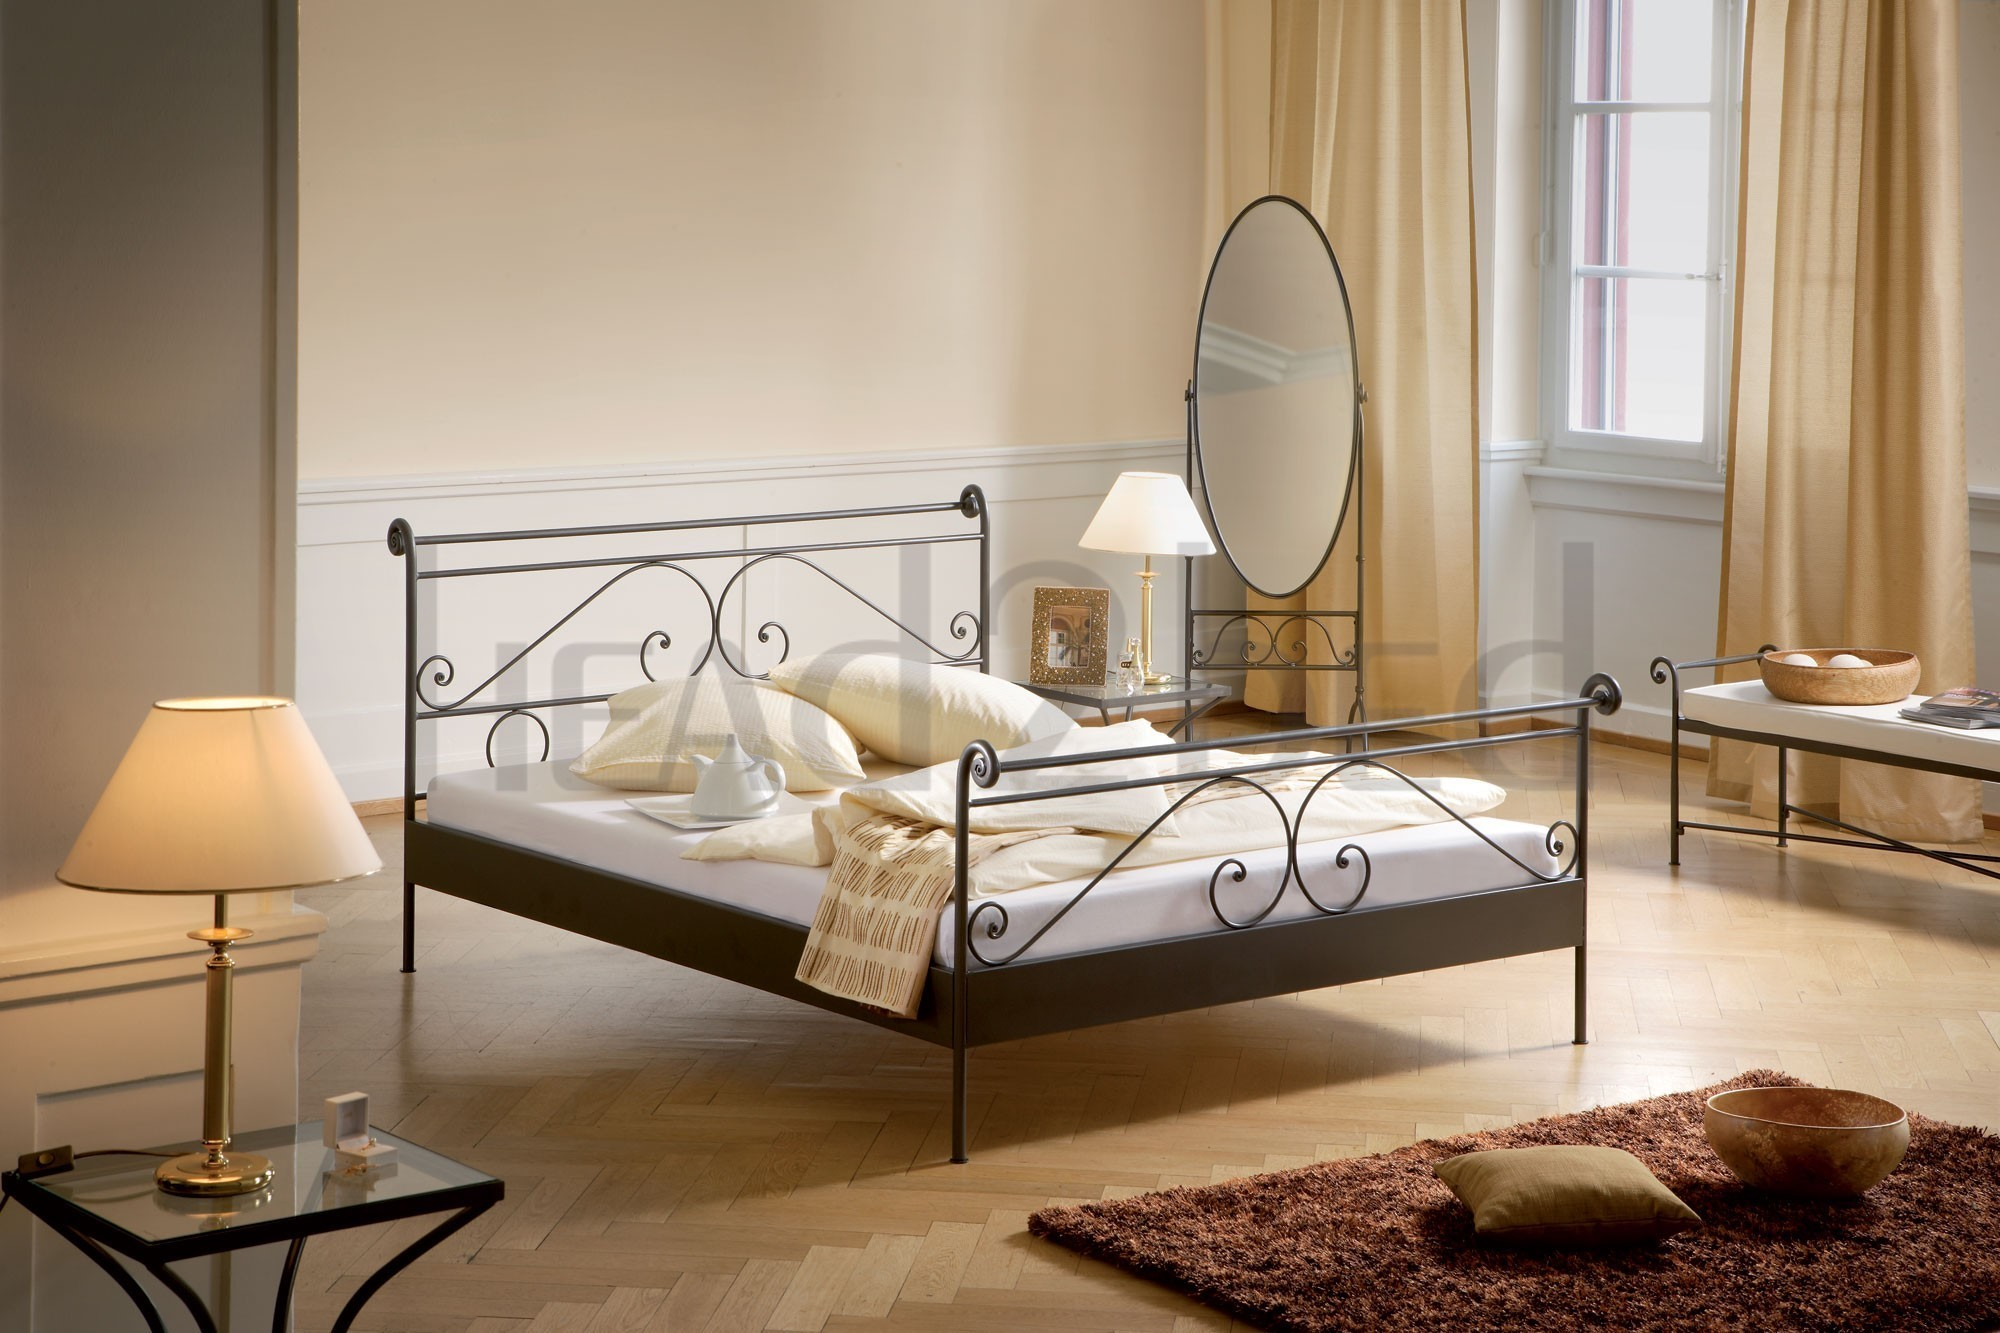 hasena romantic cerete solid wrought iron bed head2bed uk. Black Bedroom Furniture Sets. Home Design Ideas